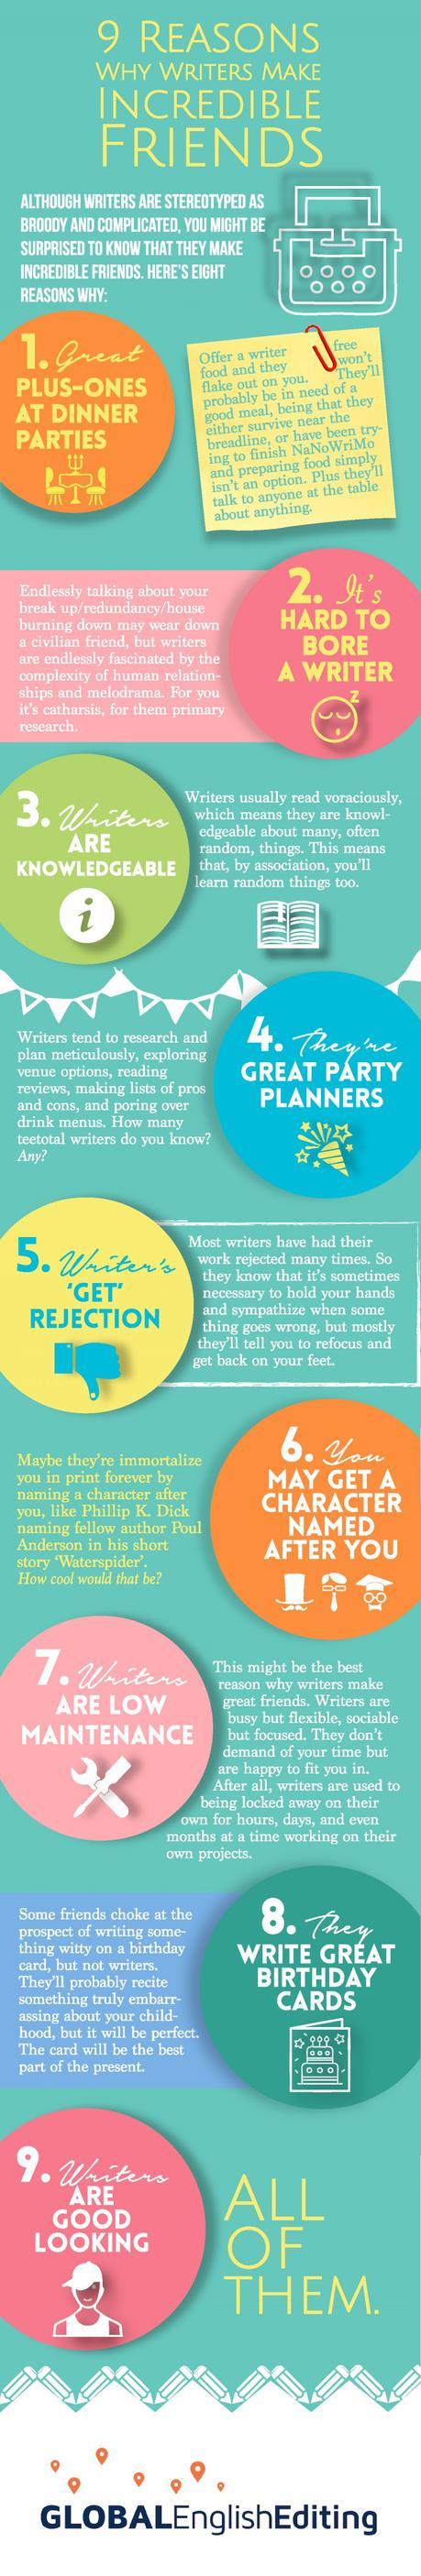 Why Writers Make Incredible Friends infographic